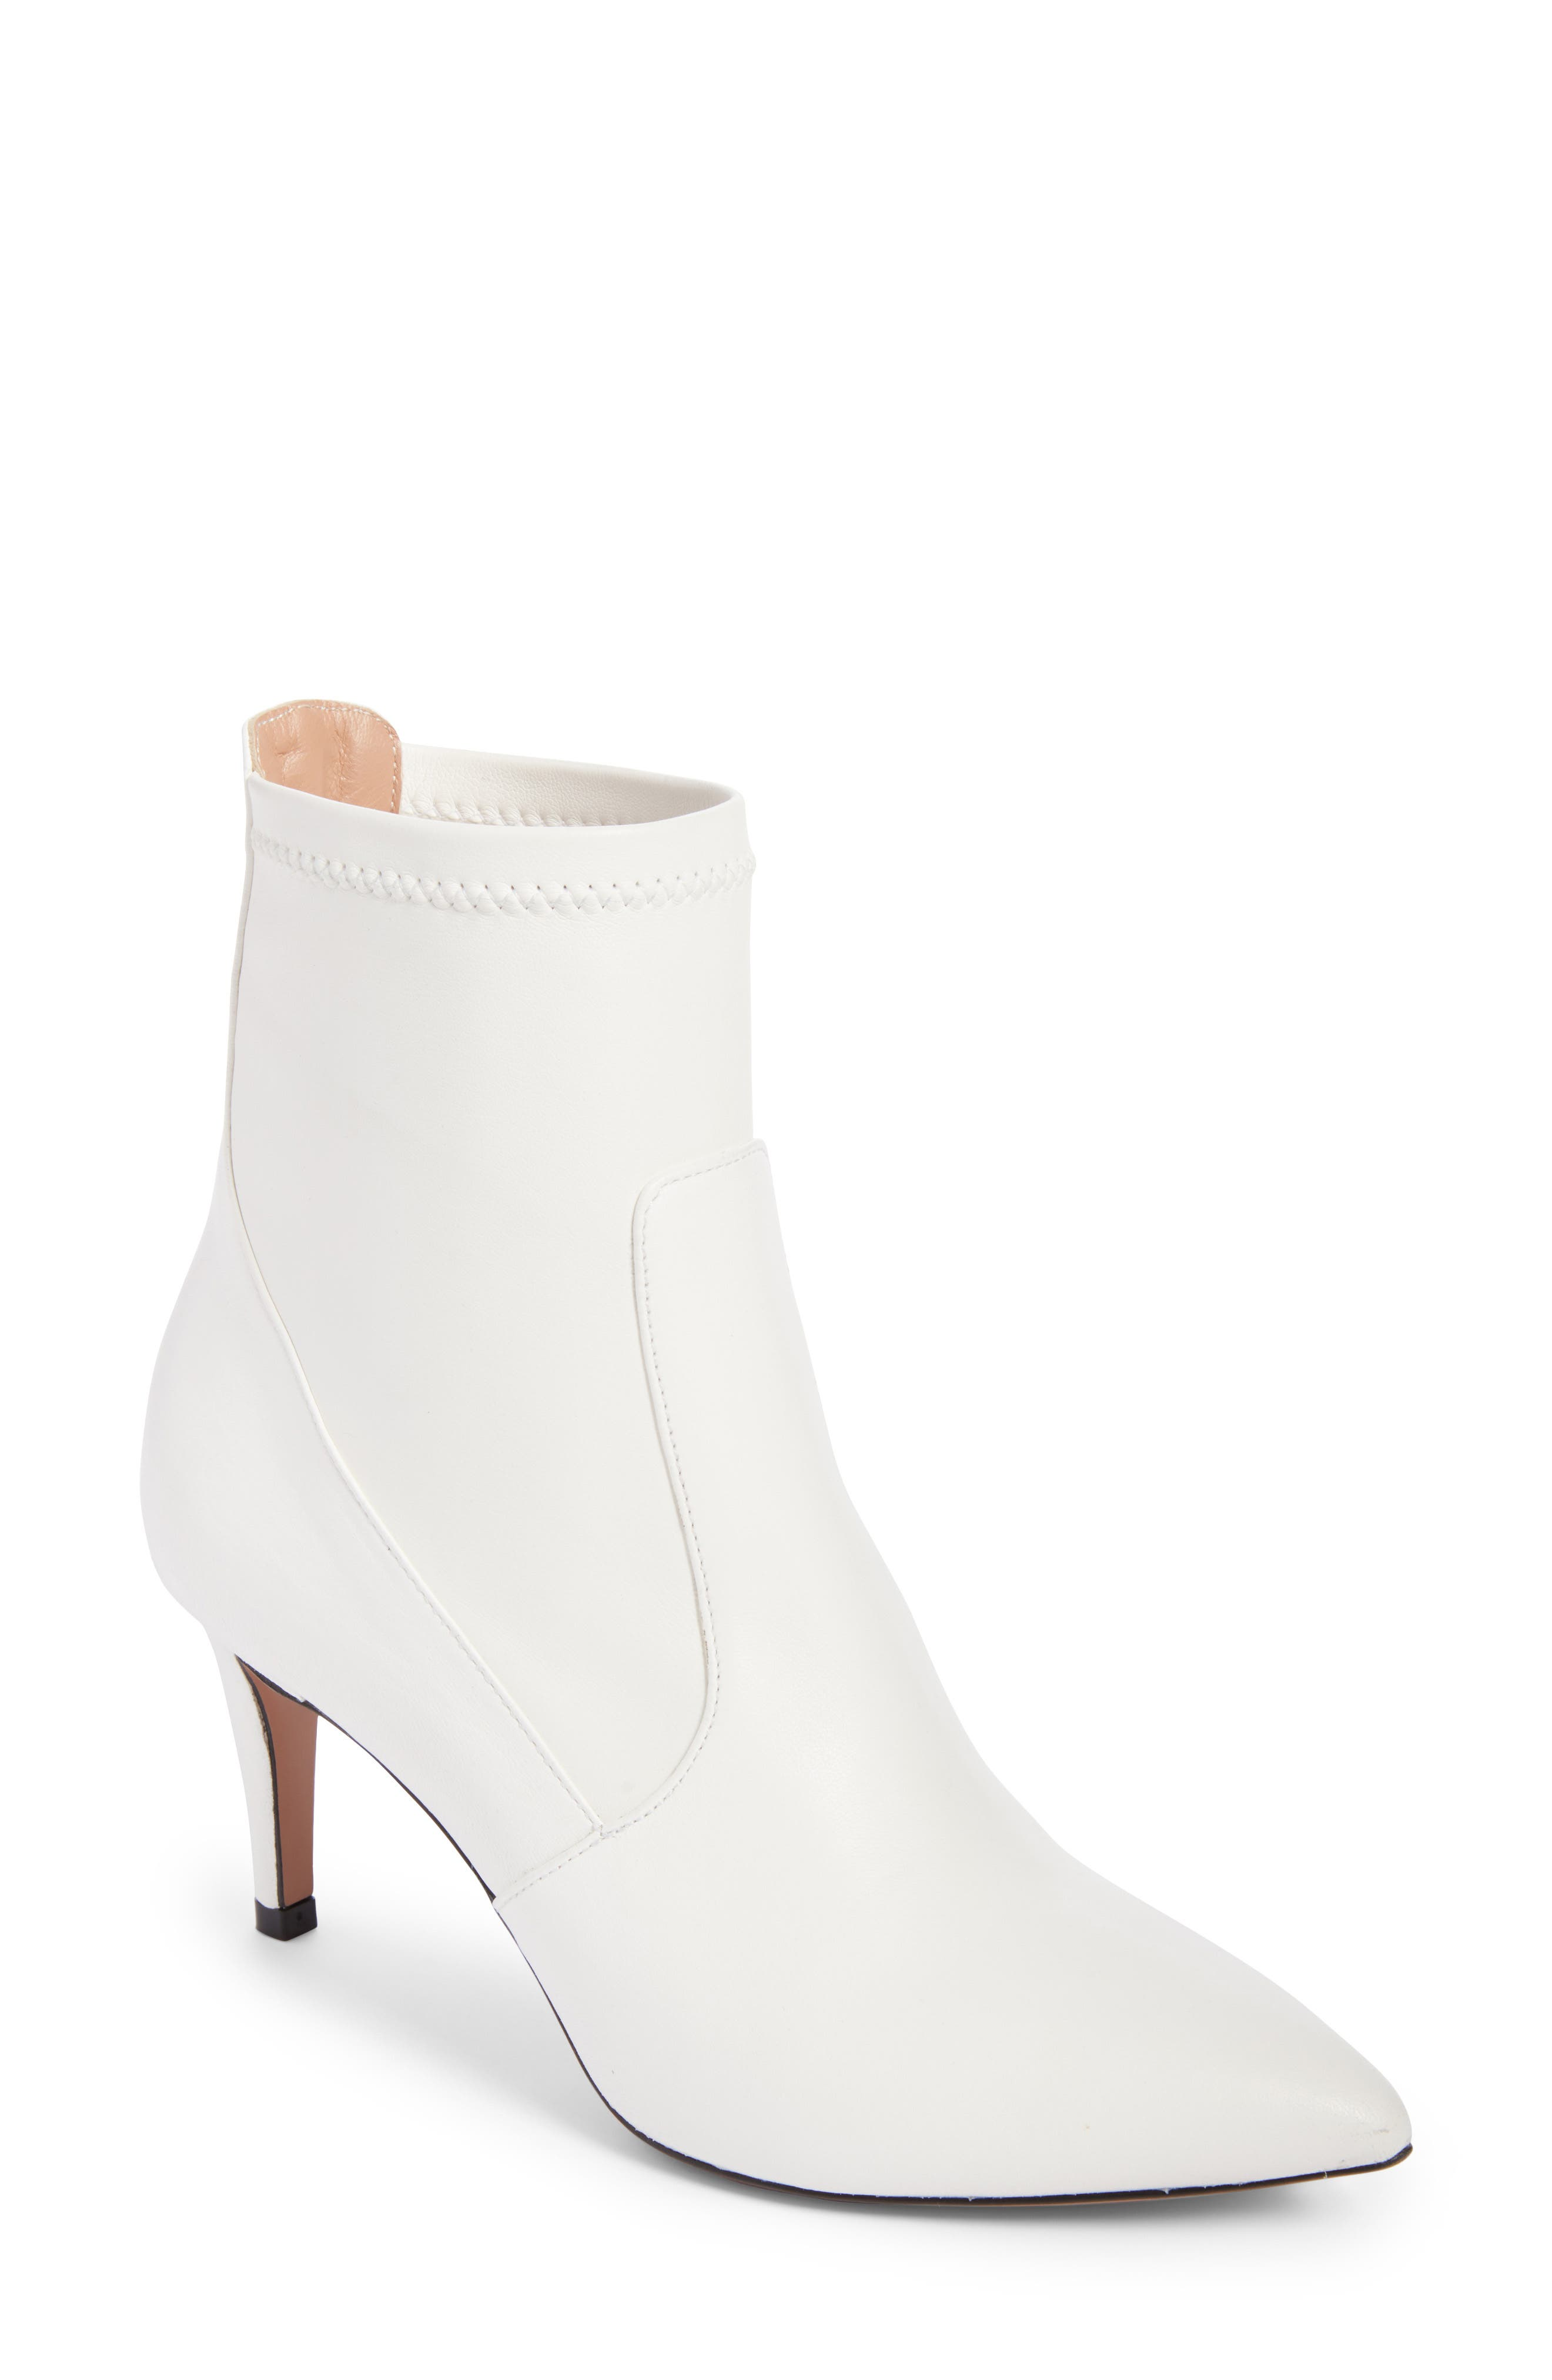 Alternate Image 1 Selected - Lewit Abra Bootie (Women)